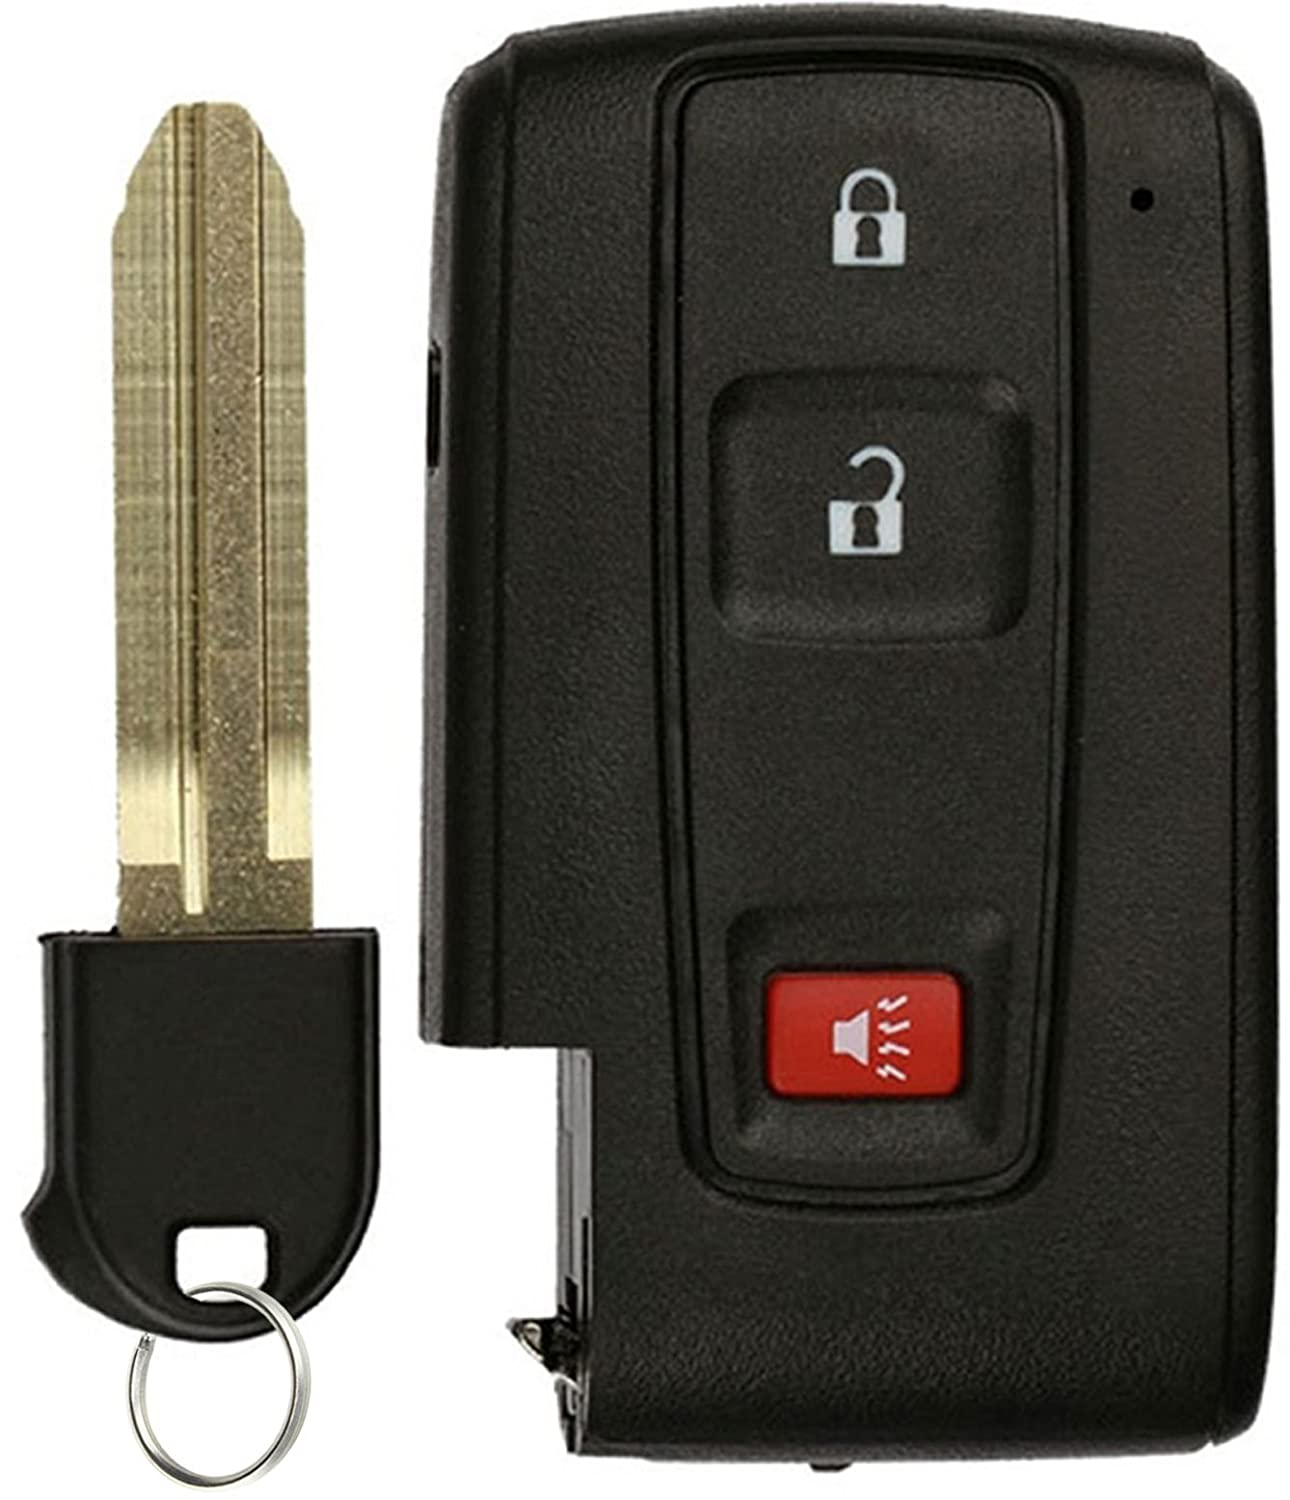 Amazon KeylessOption Keyless Entry Remote Control Car Key Fob